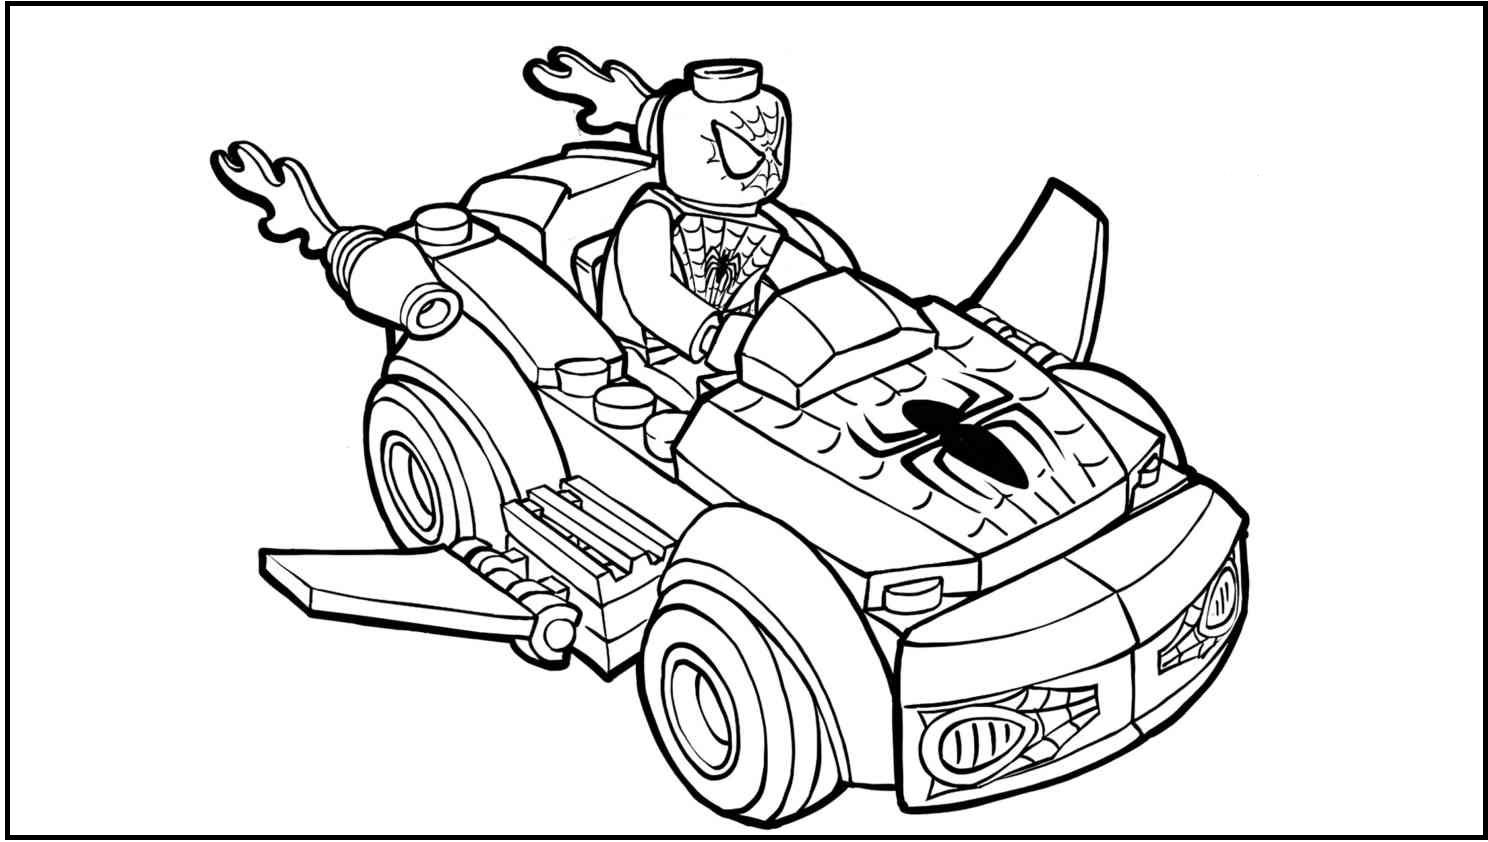 spiderman car coloring pages the best free repair coloring page images download from spiderman car pages coloring